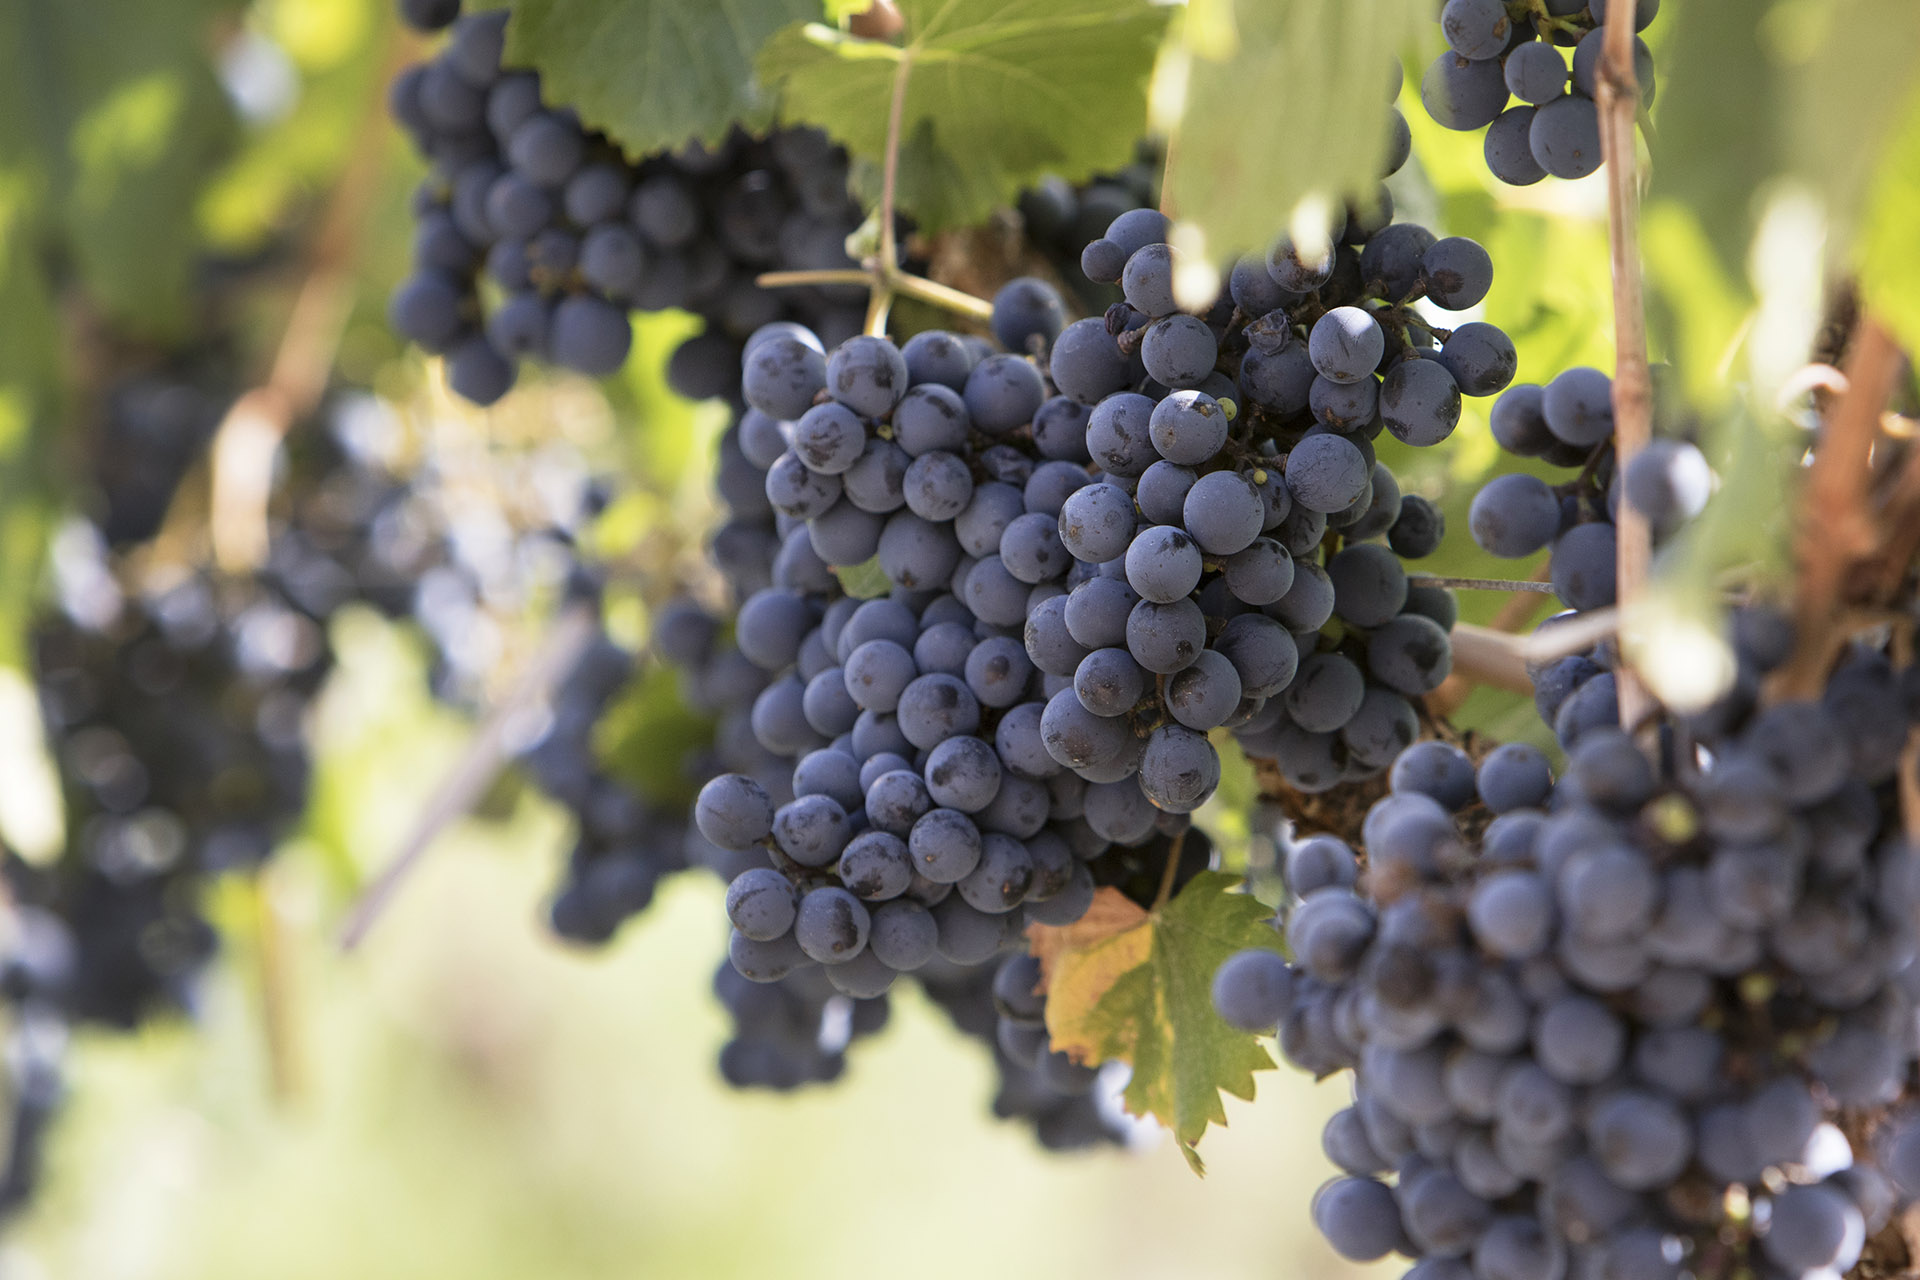 Malbec grapes in a vineyard in Mendoza, Argentina